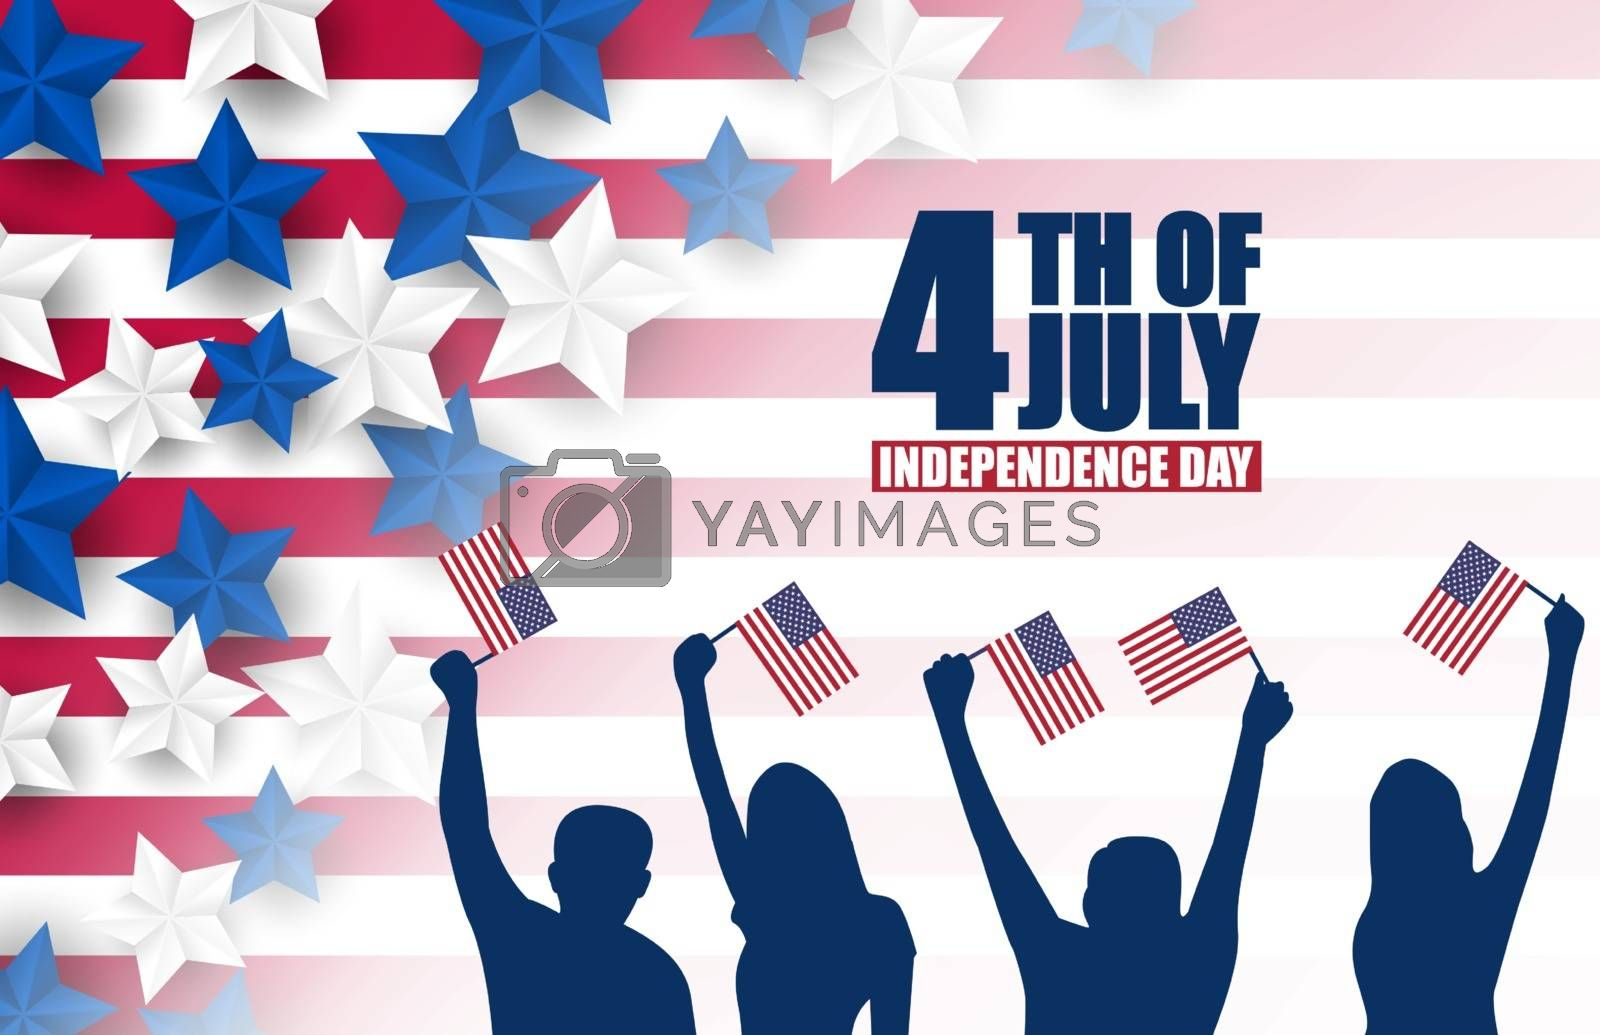 Royalty free image of 4th of July banner or poster in United States of America flag co by INDz